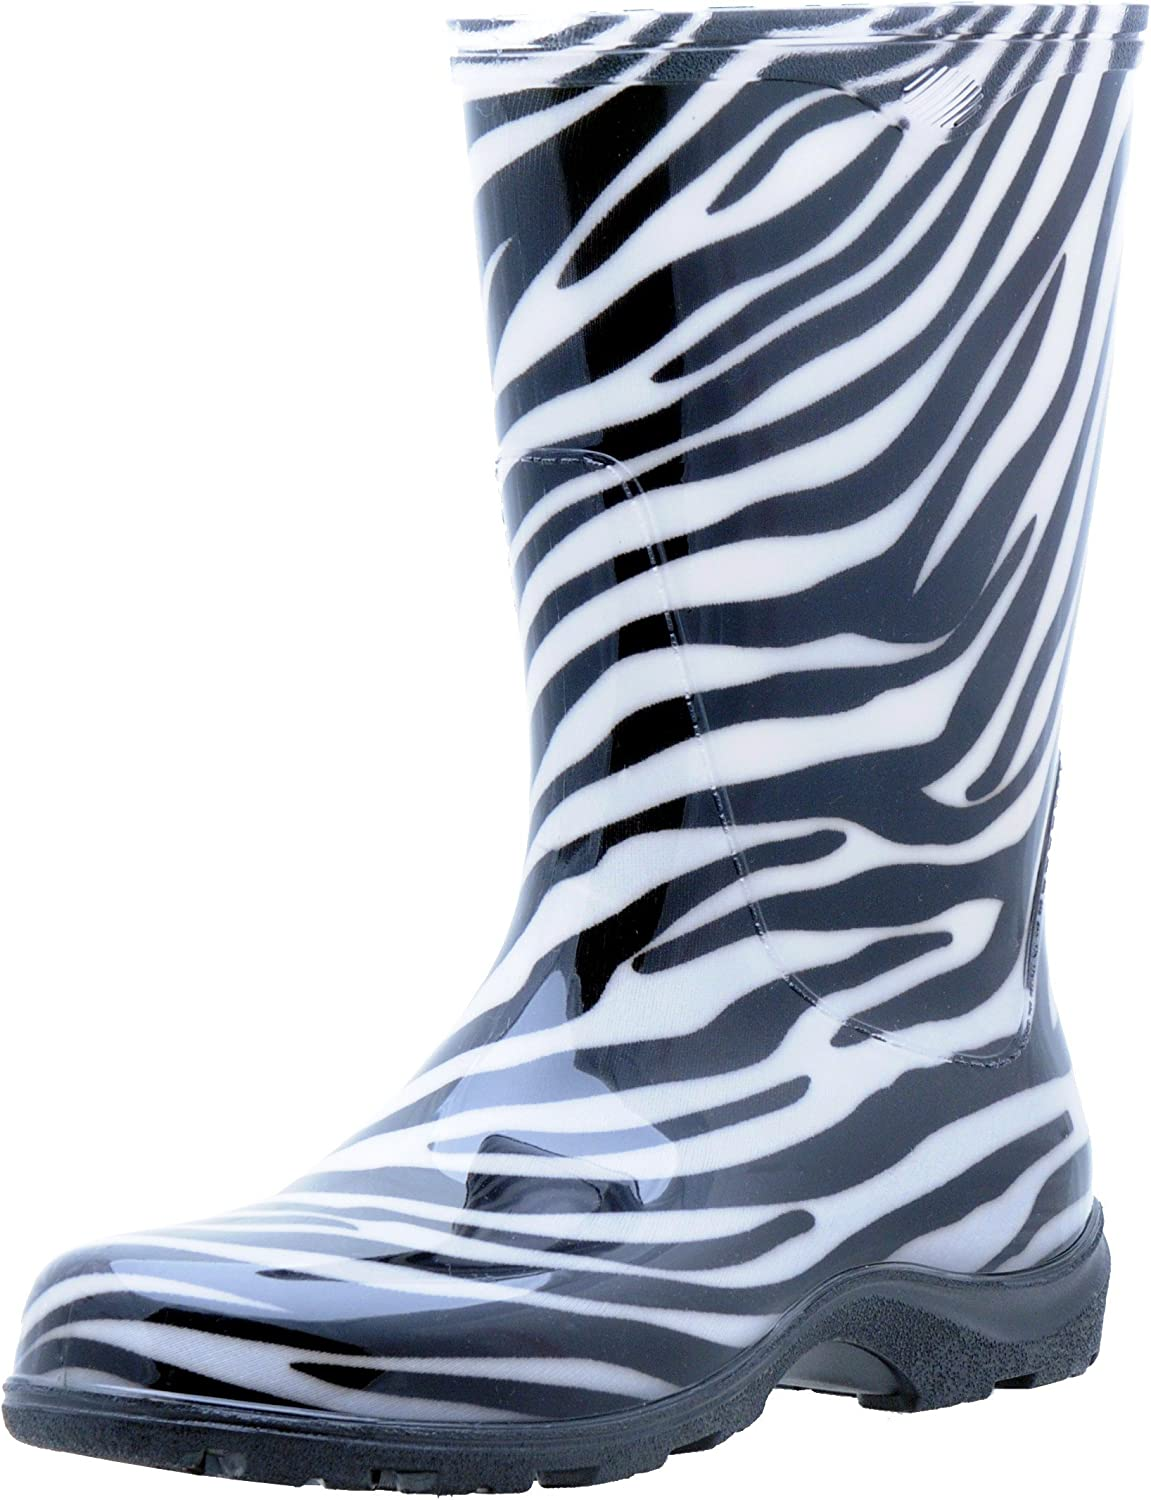 Sloggers Women's Rain and Garden Boot with All-Day-Comfort Insole, Zebra Print - Wo's Size 6 - Style 5006ZE06